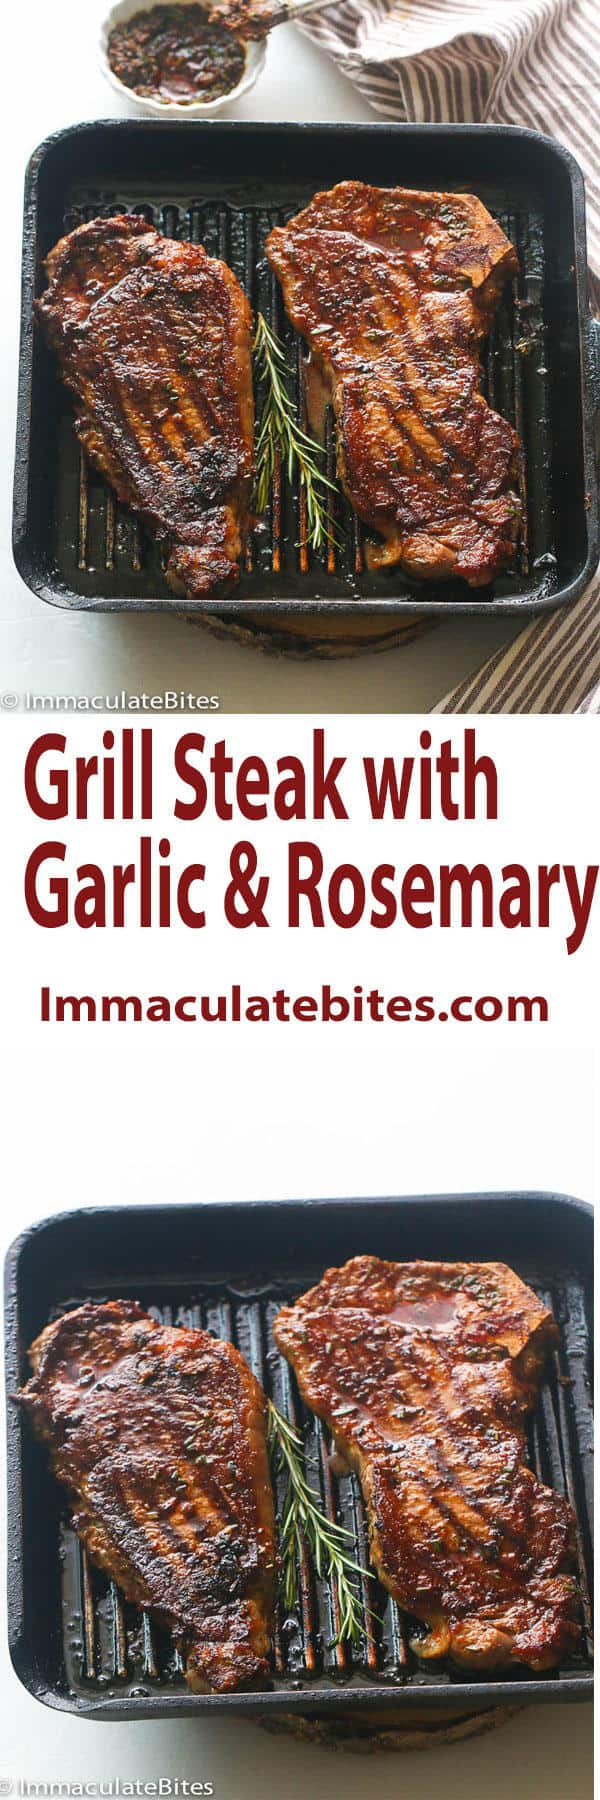 Grill steak with garlic and rosemary